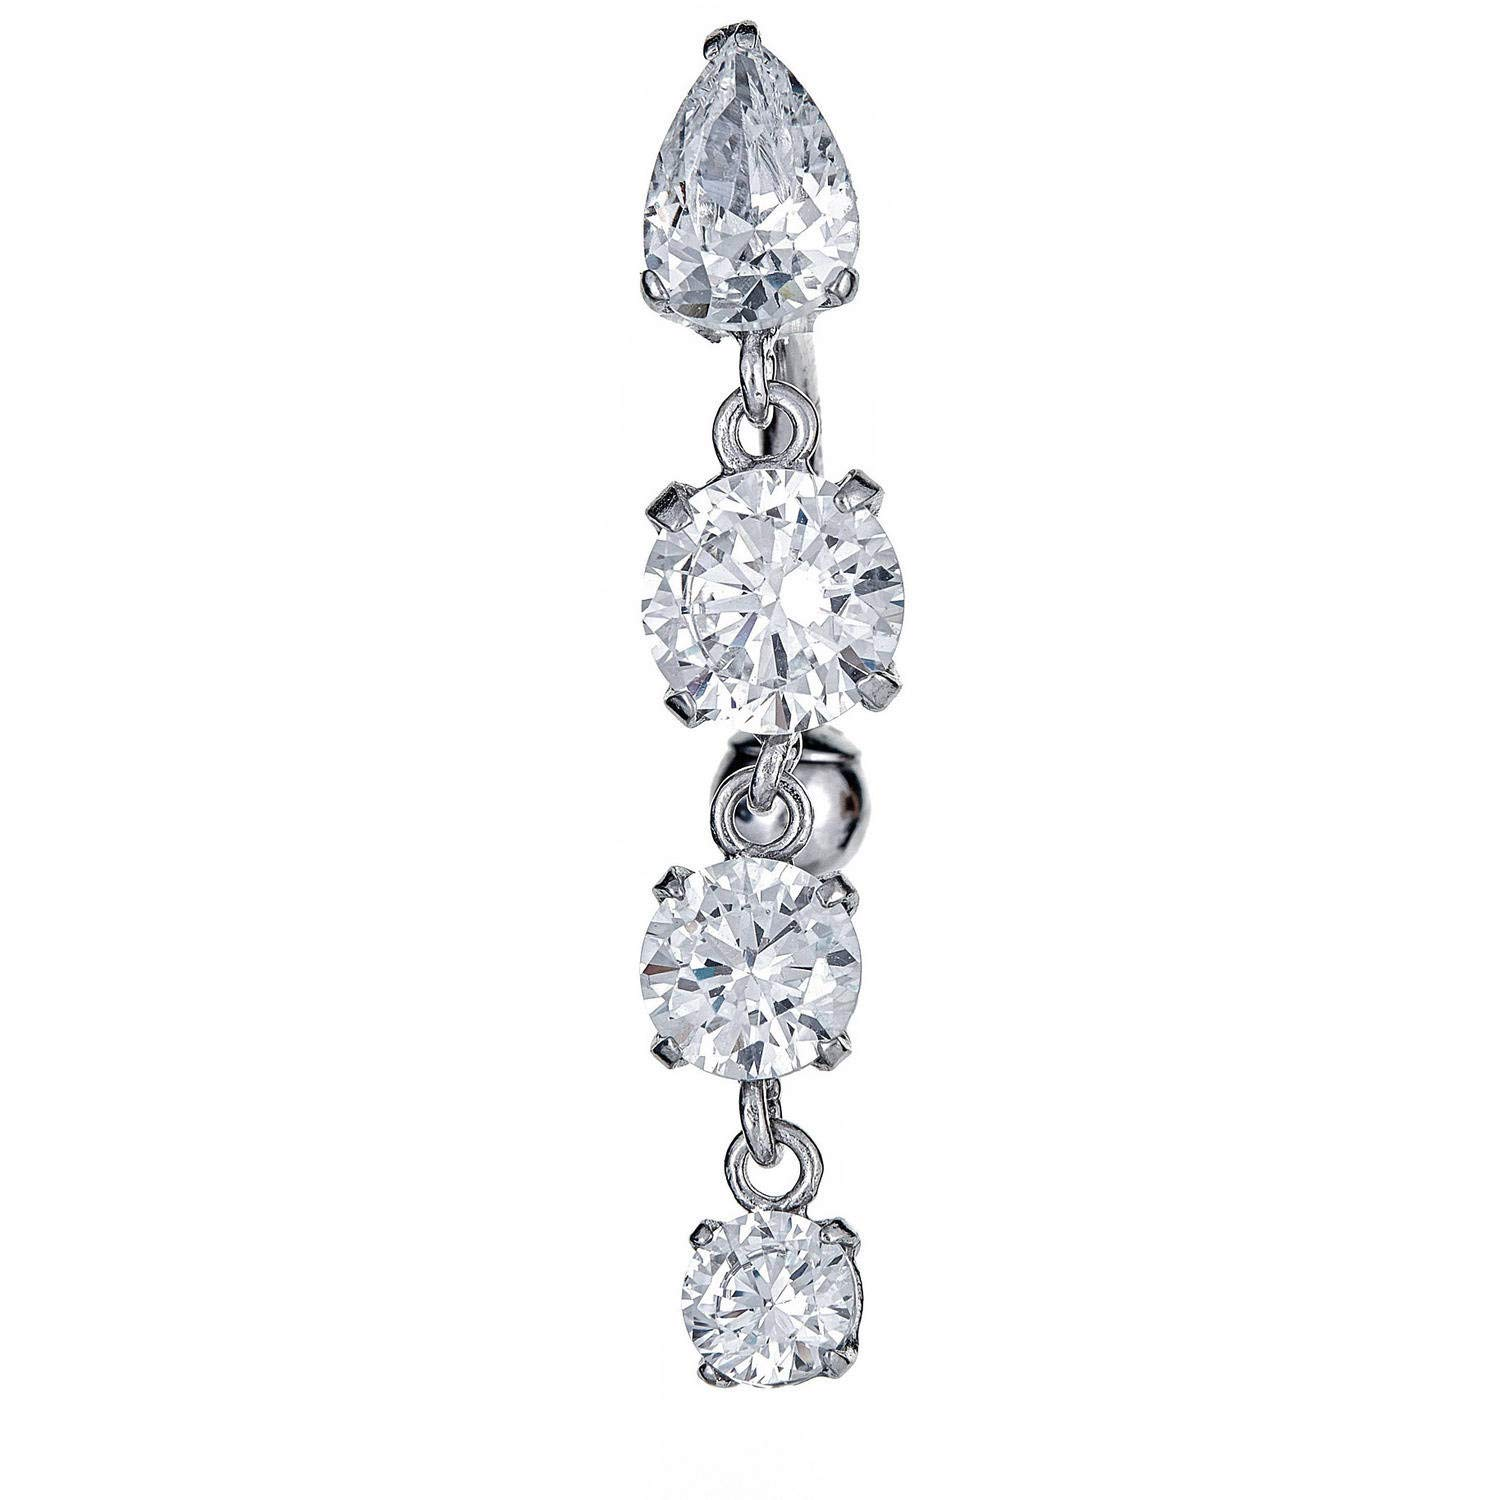 Zahaav Jewelry 10kt Solid White Gold Dangling Belly Button Ring with CZ by Zahaav Jewelry